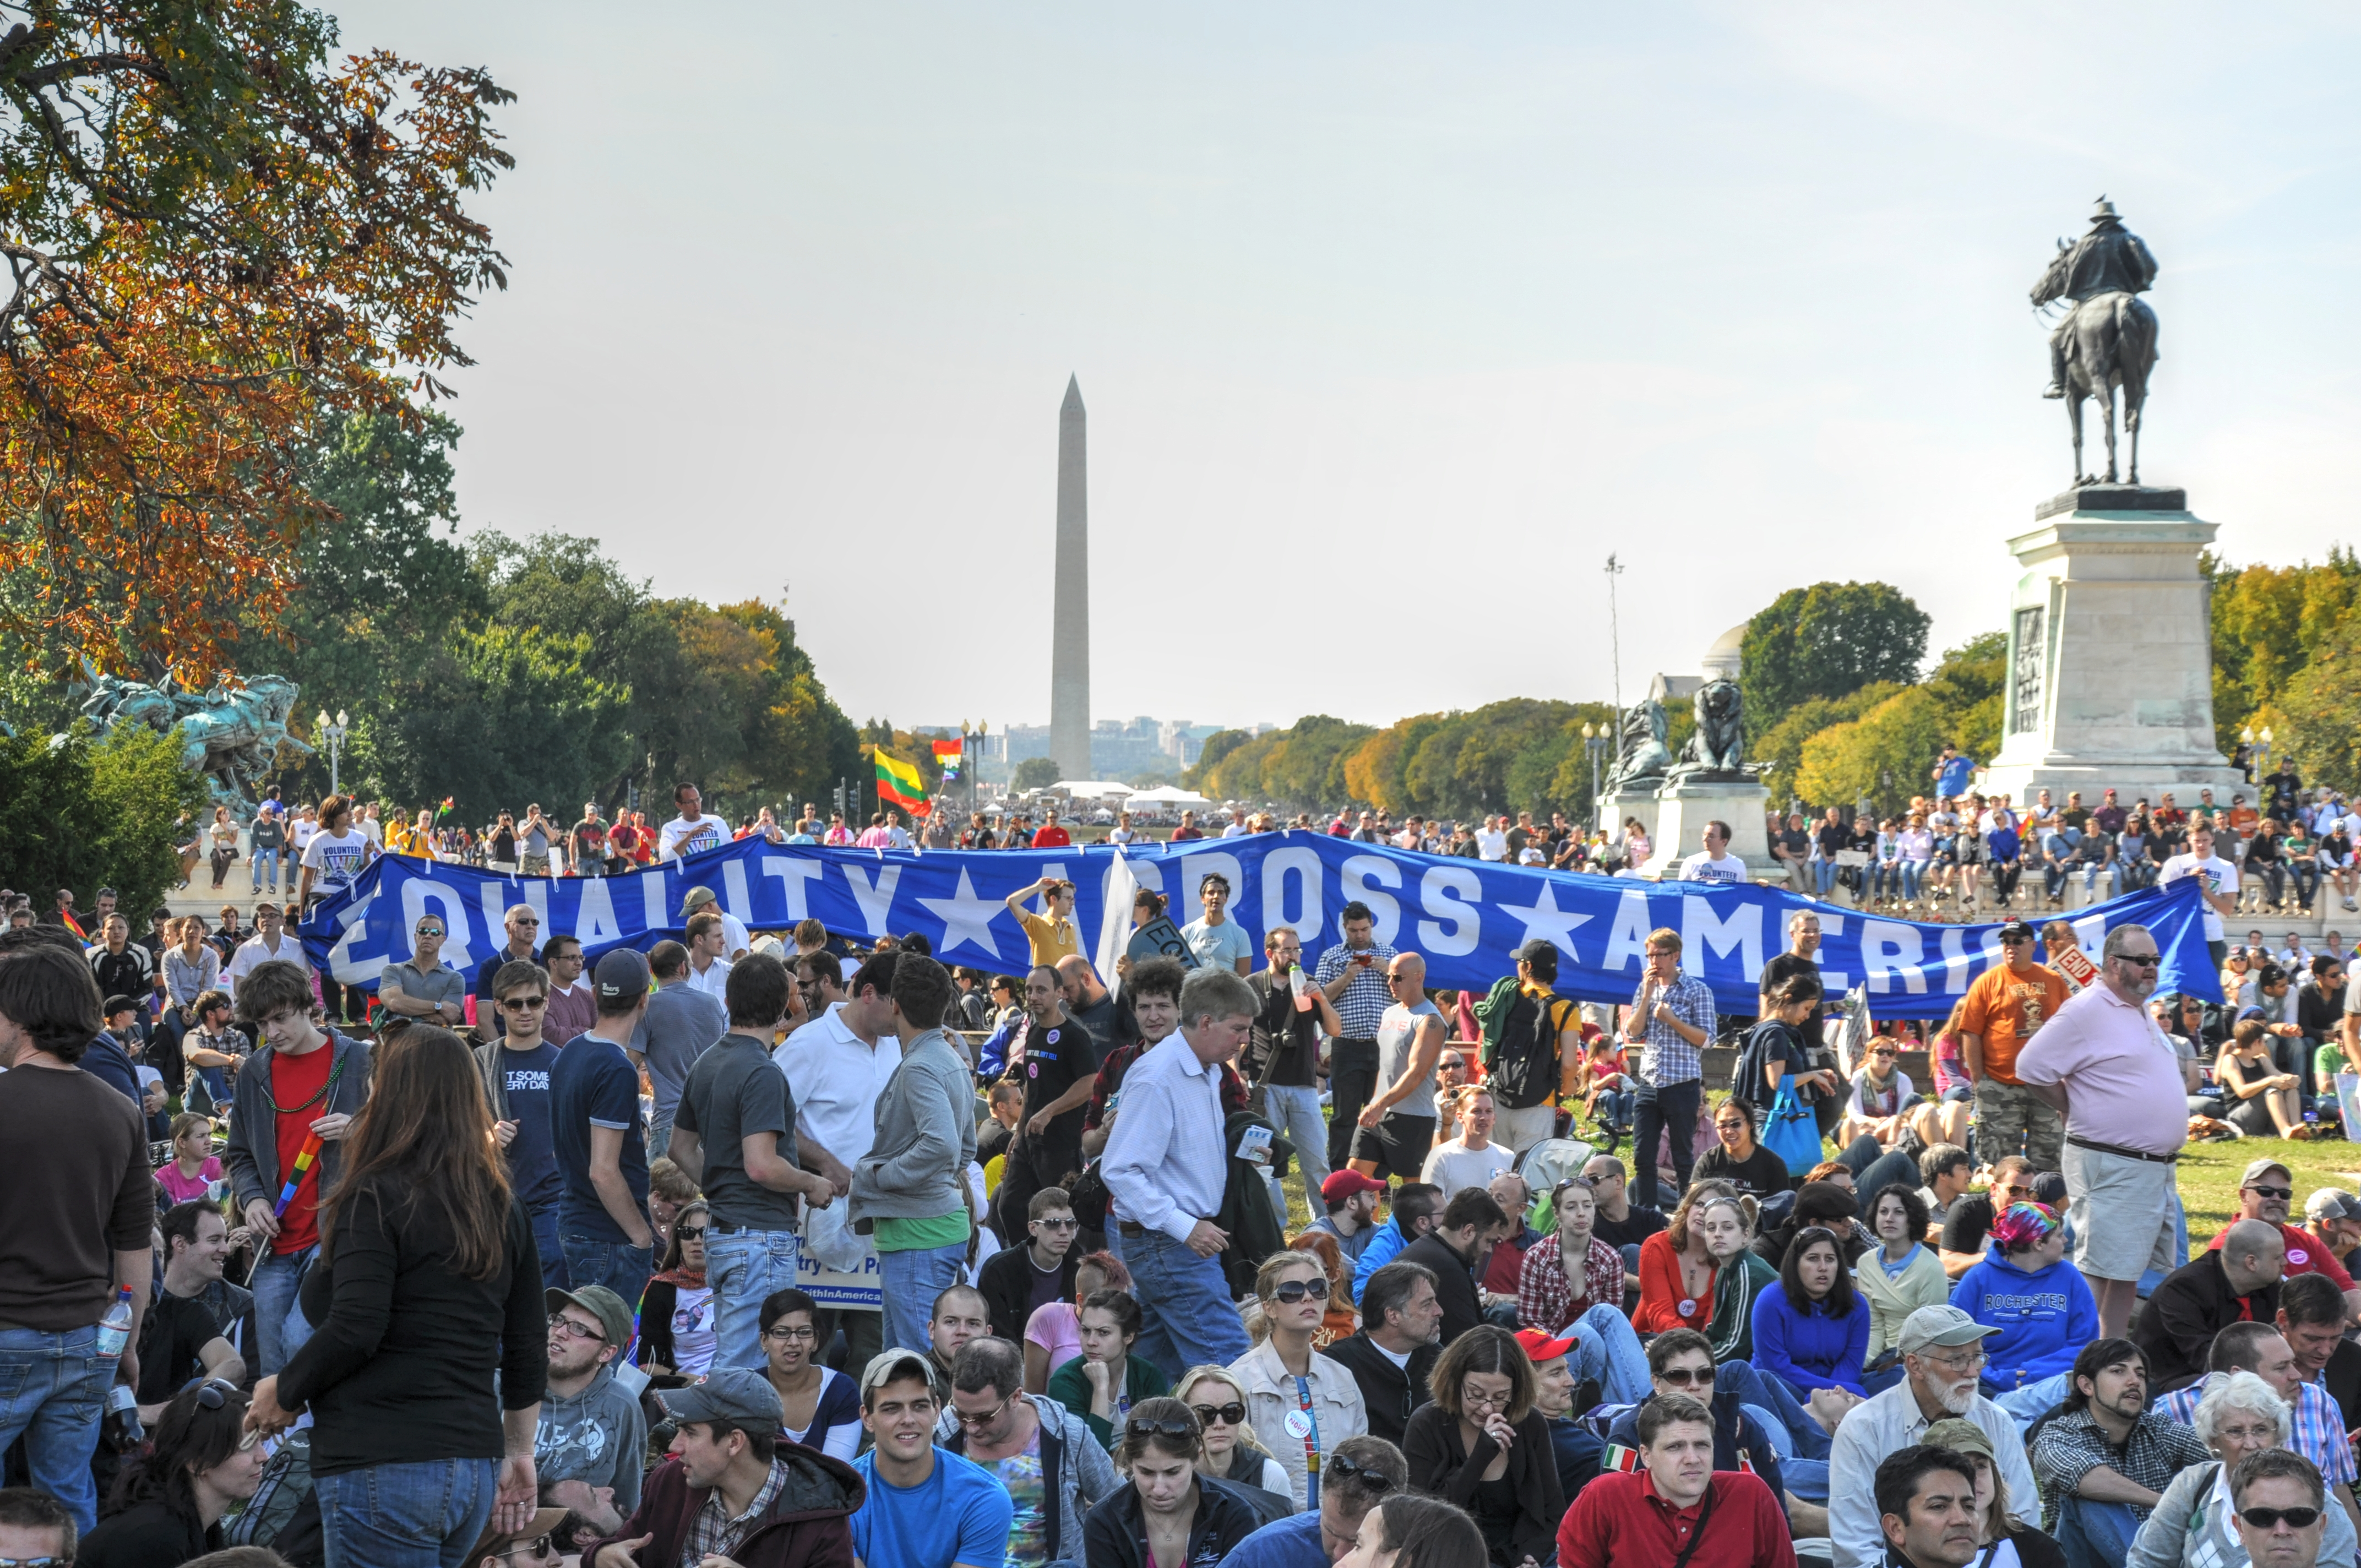 A group of protesters sitting and holding a banner on a large open space. A tall obelisk and a statue of a man on a horse are in the background.